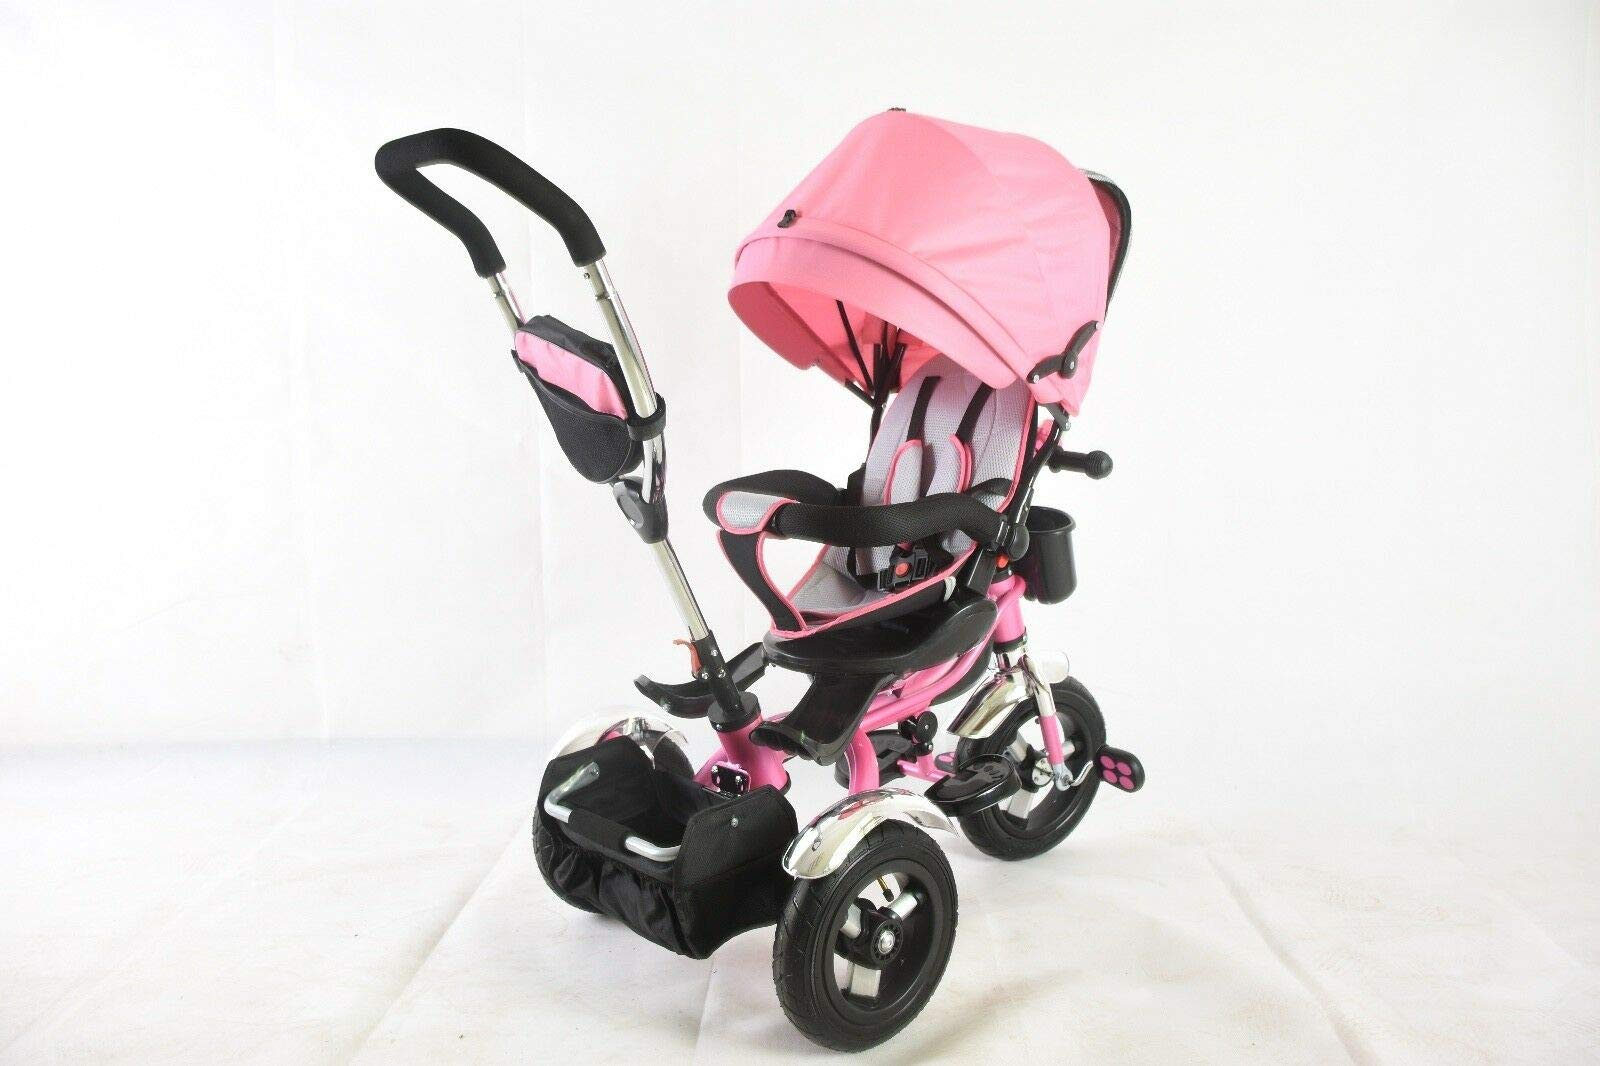 Trike Tricycle Stroller Buggy Wheel Ride Push Rain Cover Rubber Tyres 4 in 1 System (Pink) Generic Removable Leg rest for kids to feet up. Adjustable and removable parent handle or control bar. Plastic seat with removable padded cushion and lap seat belt to keep your child safe. 6